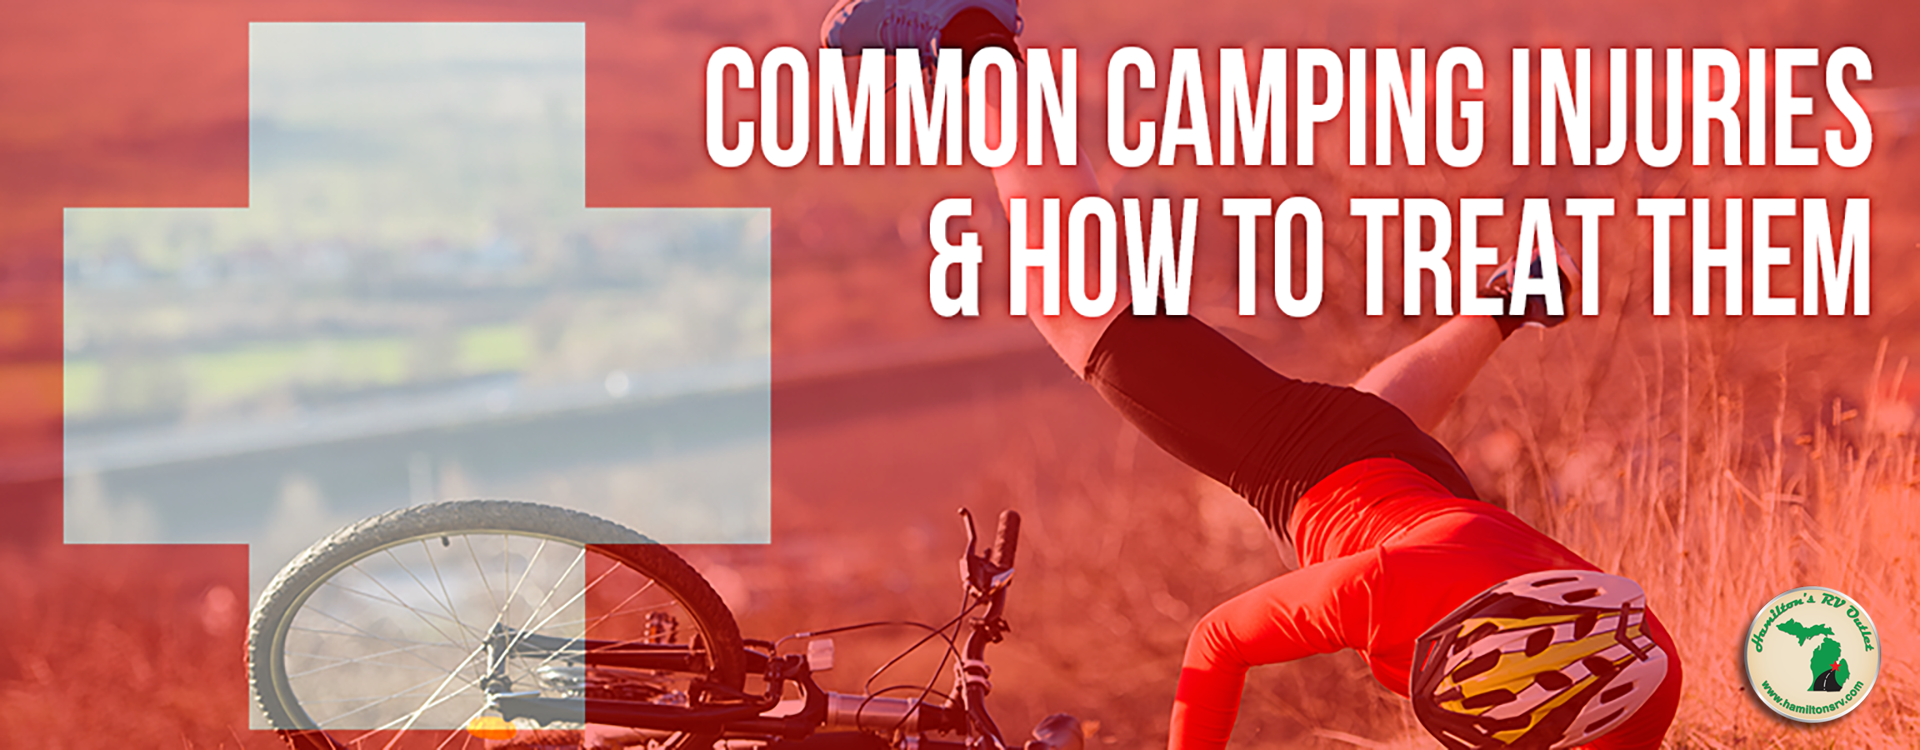 common camping injuries and how to treat them - man falling off bike Banner